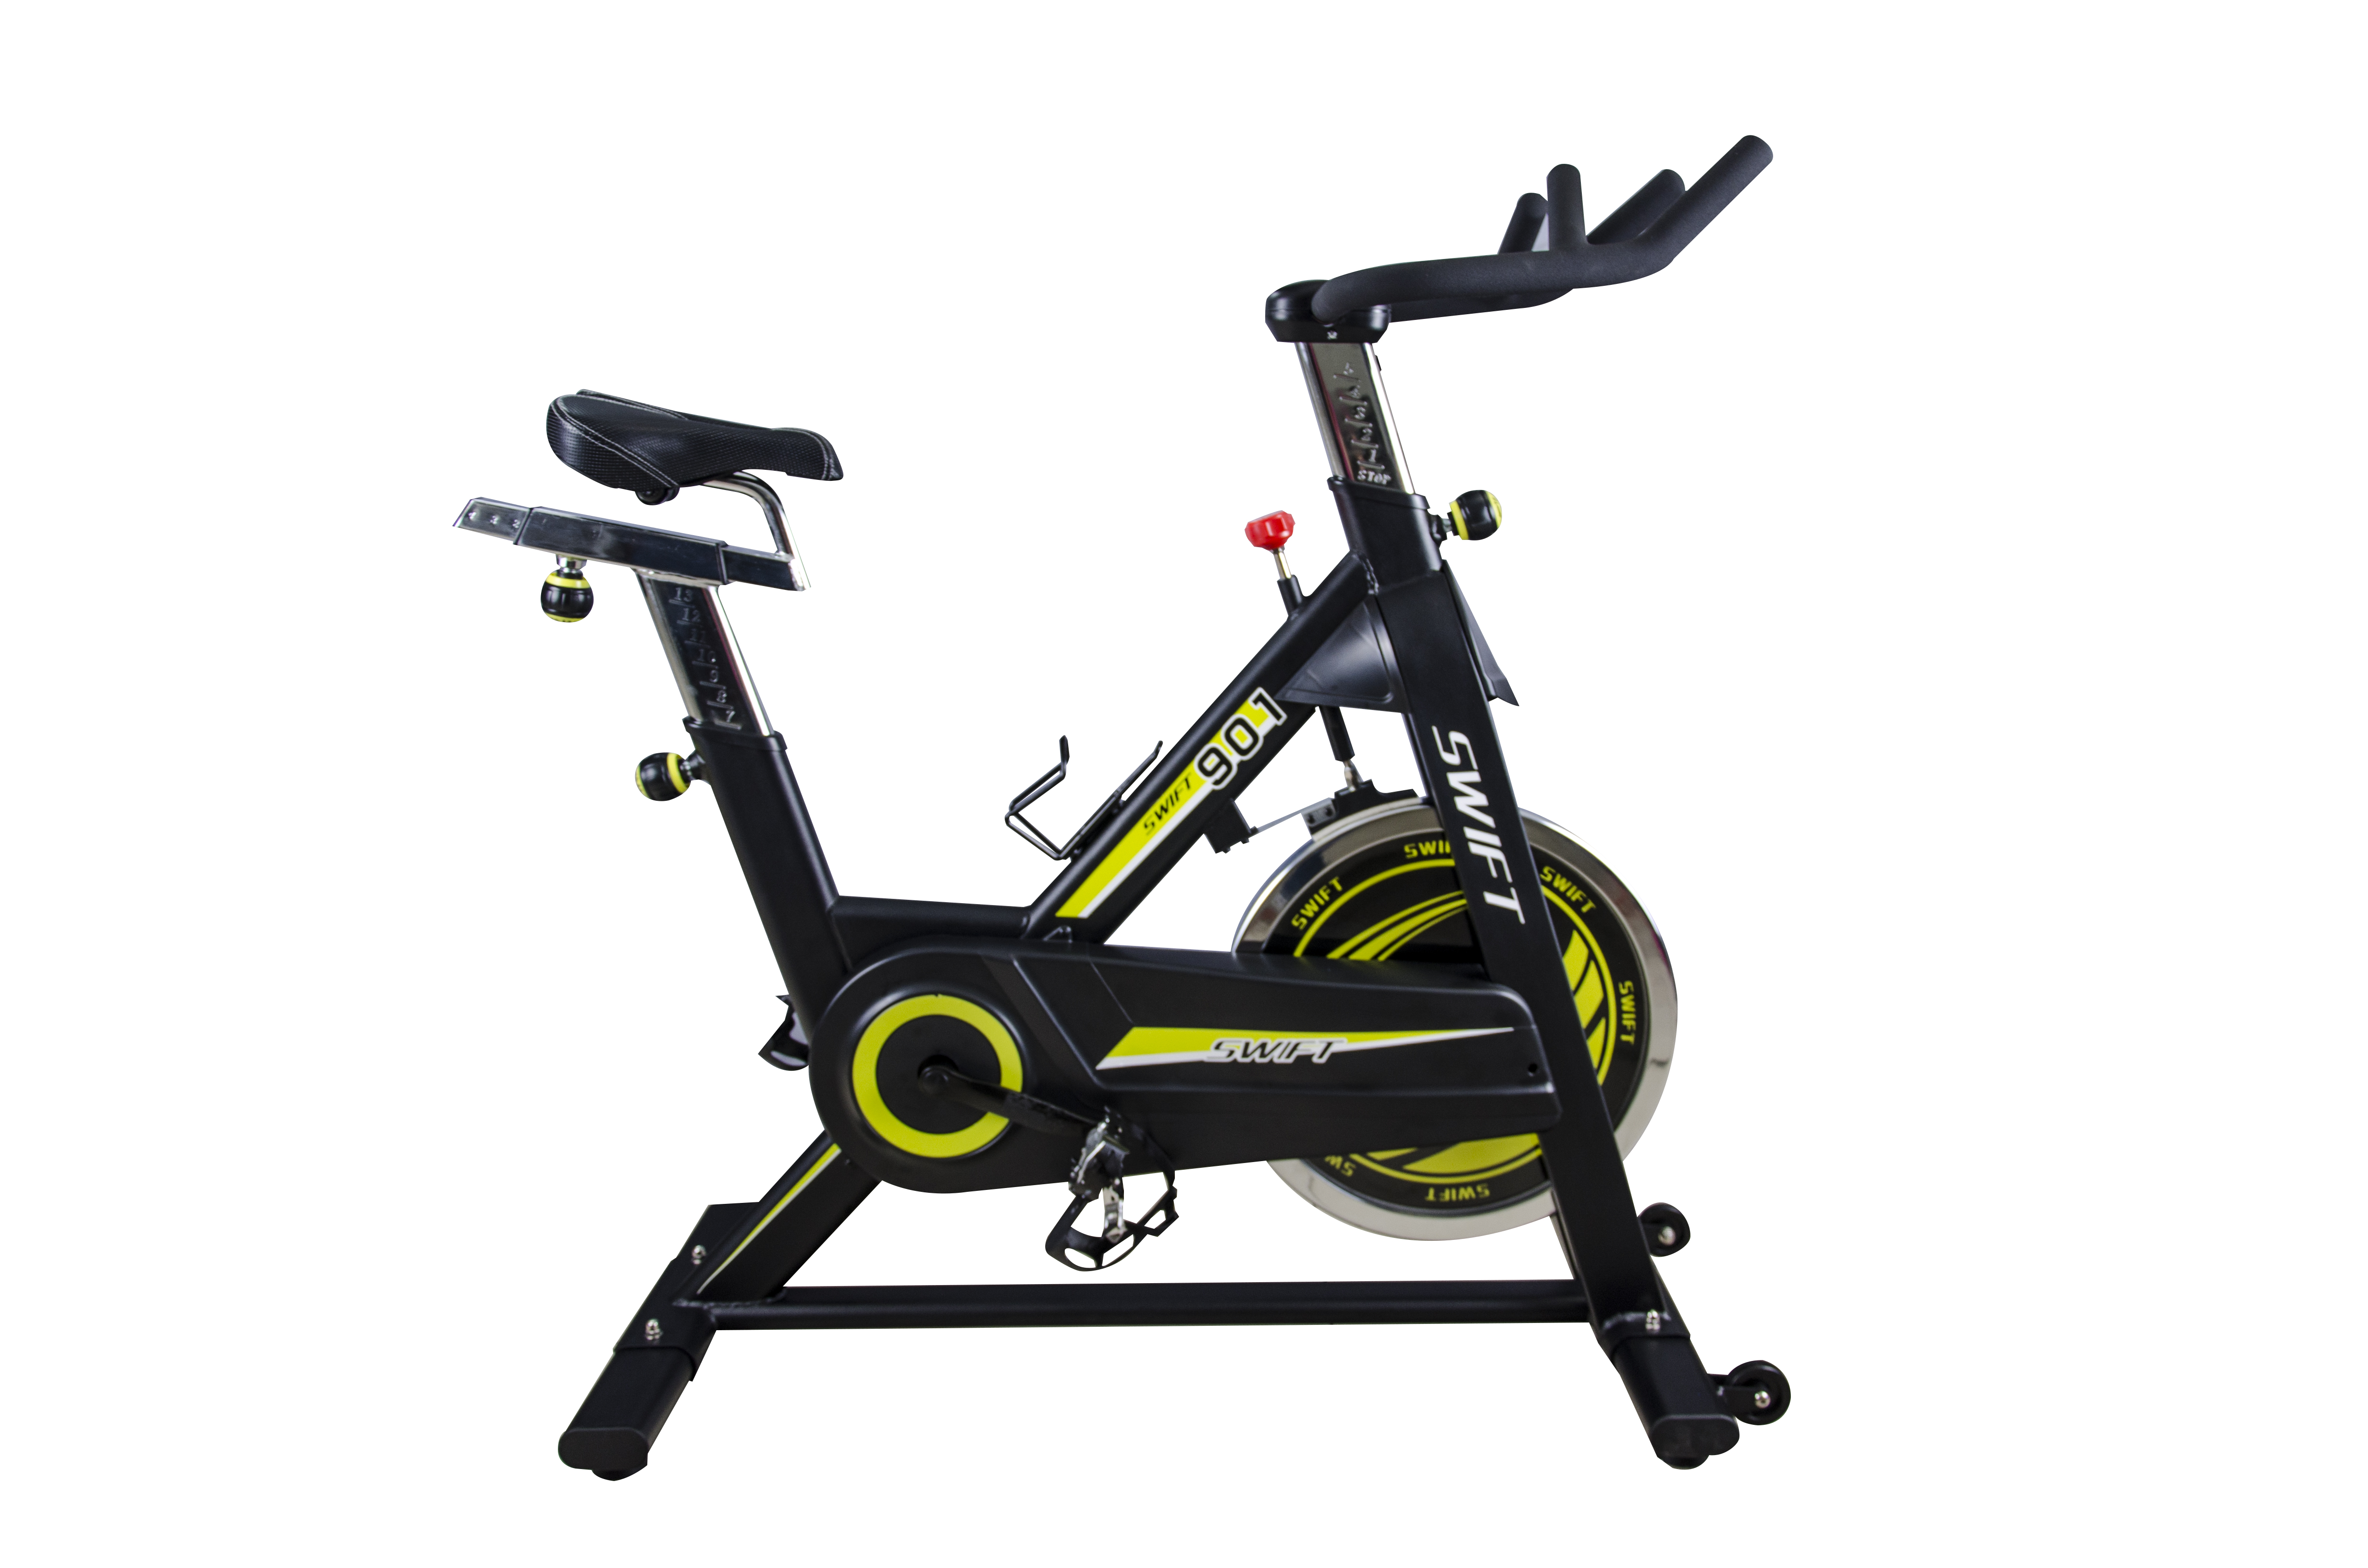 Bicicleta-spininng-swift-1